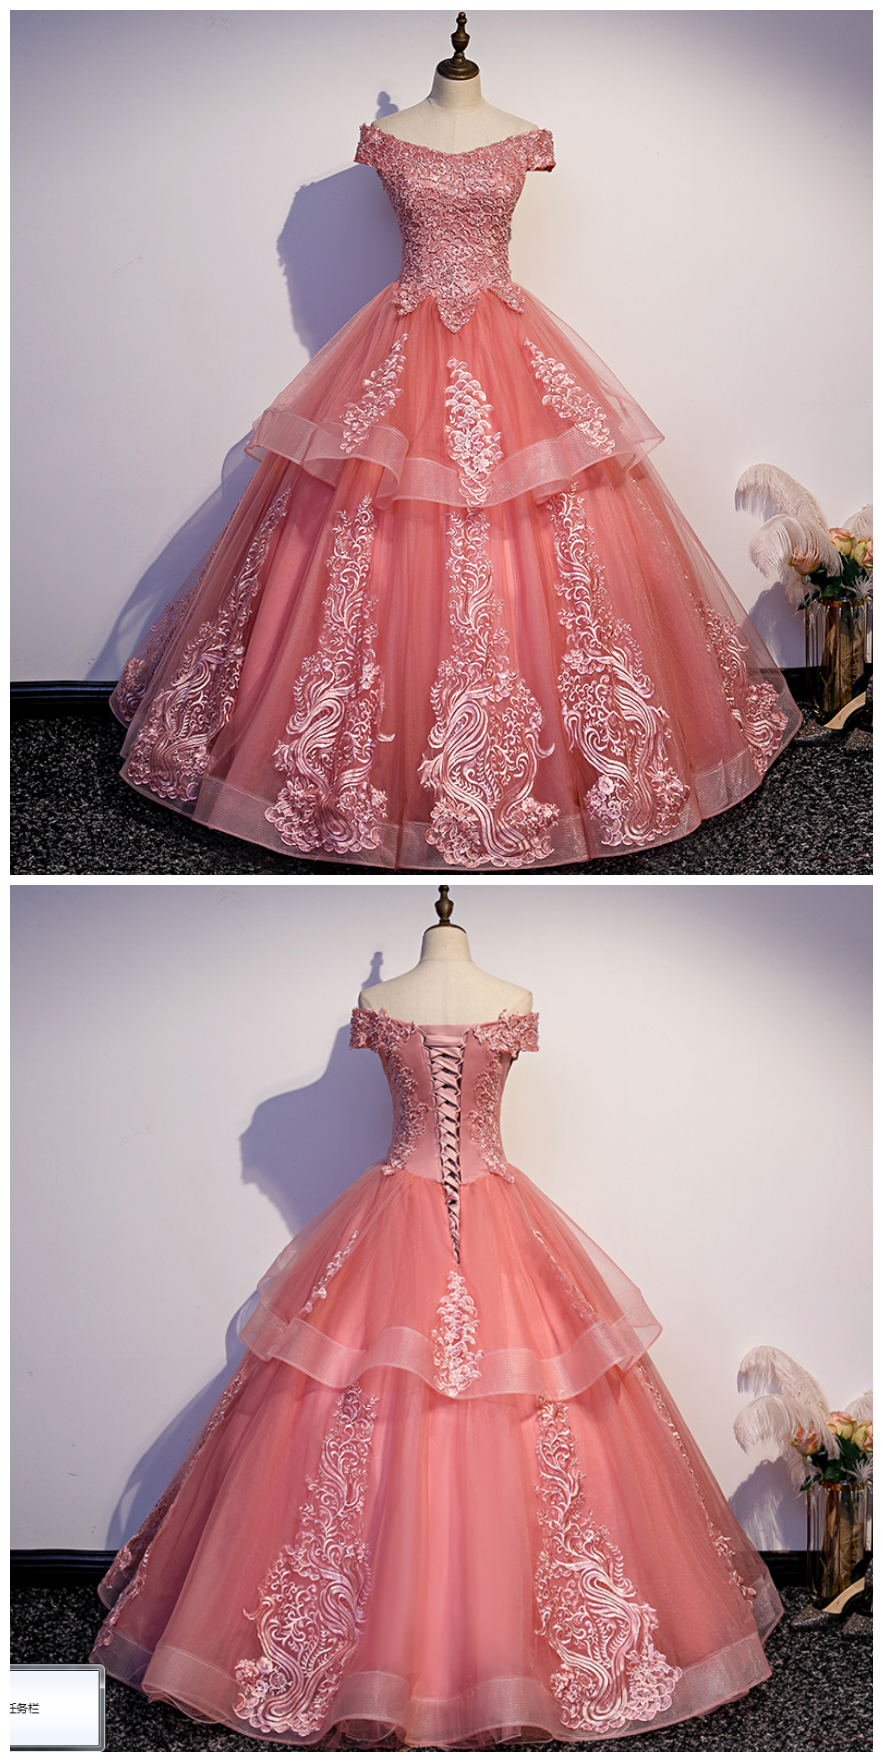 Glam Tulle Layers Ball Gown Princess Party Dress Sweet 16 Dresses Sweet 16 Dresses Dresses Ball Gowns [ 1762 x 883 Pixel ]